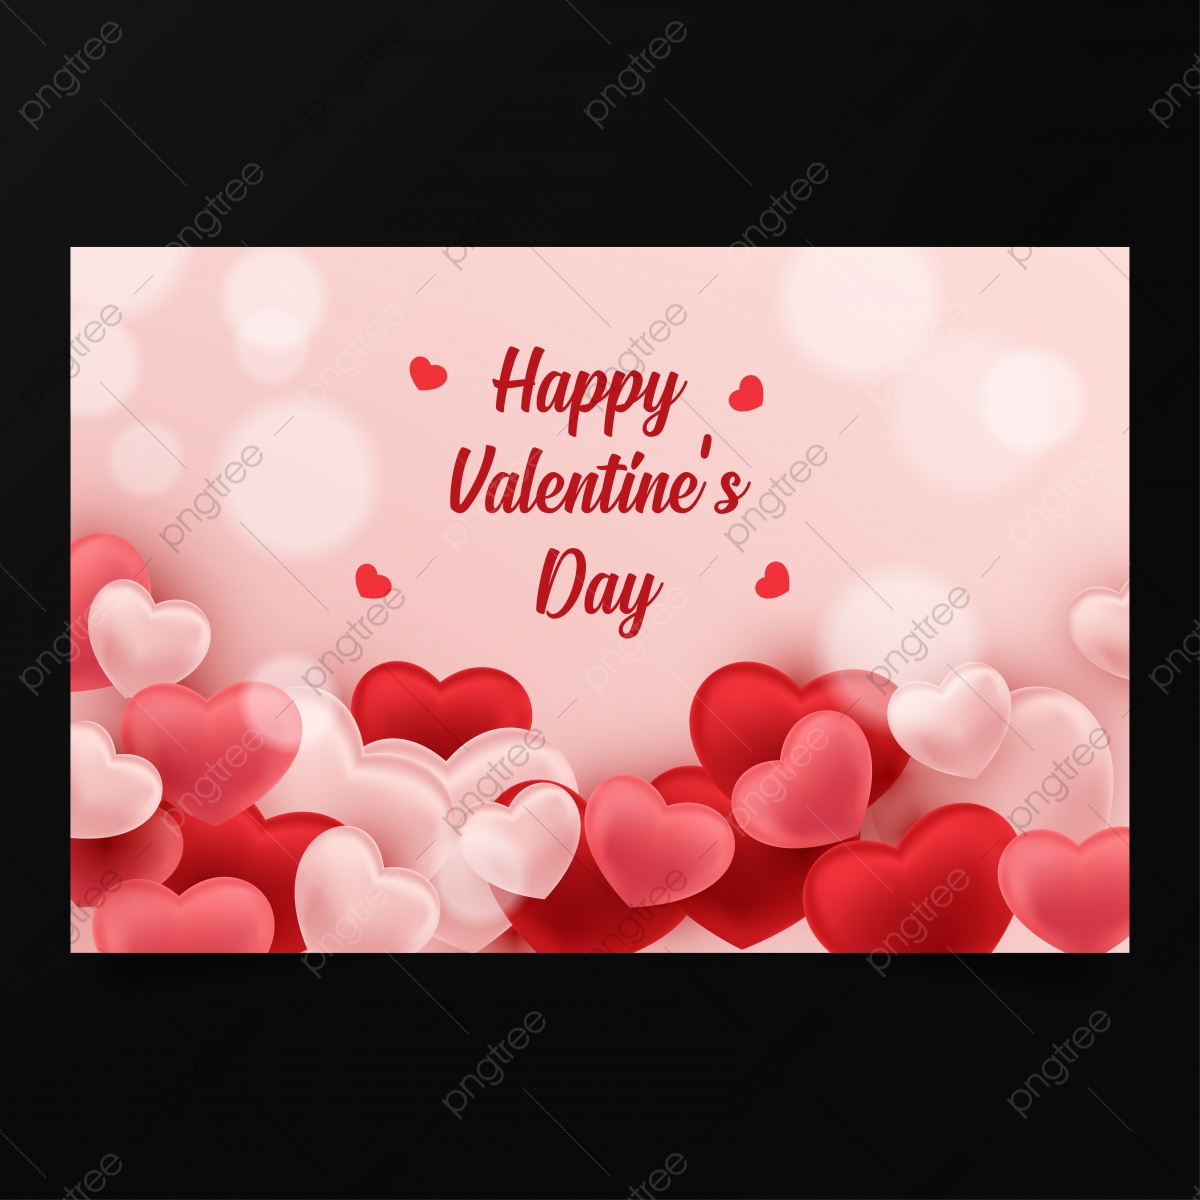 pngtree happy valentine s day background design vector template png image